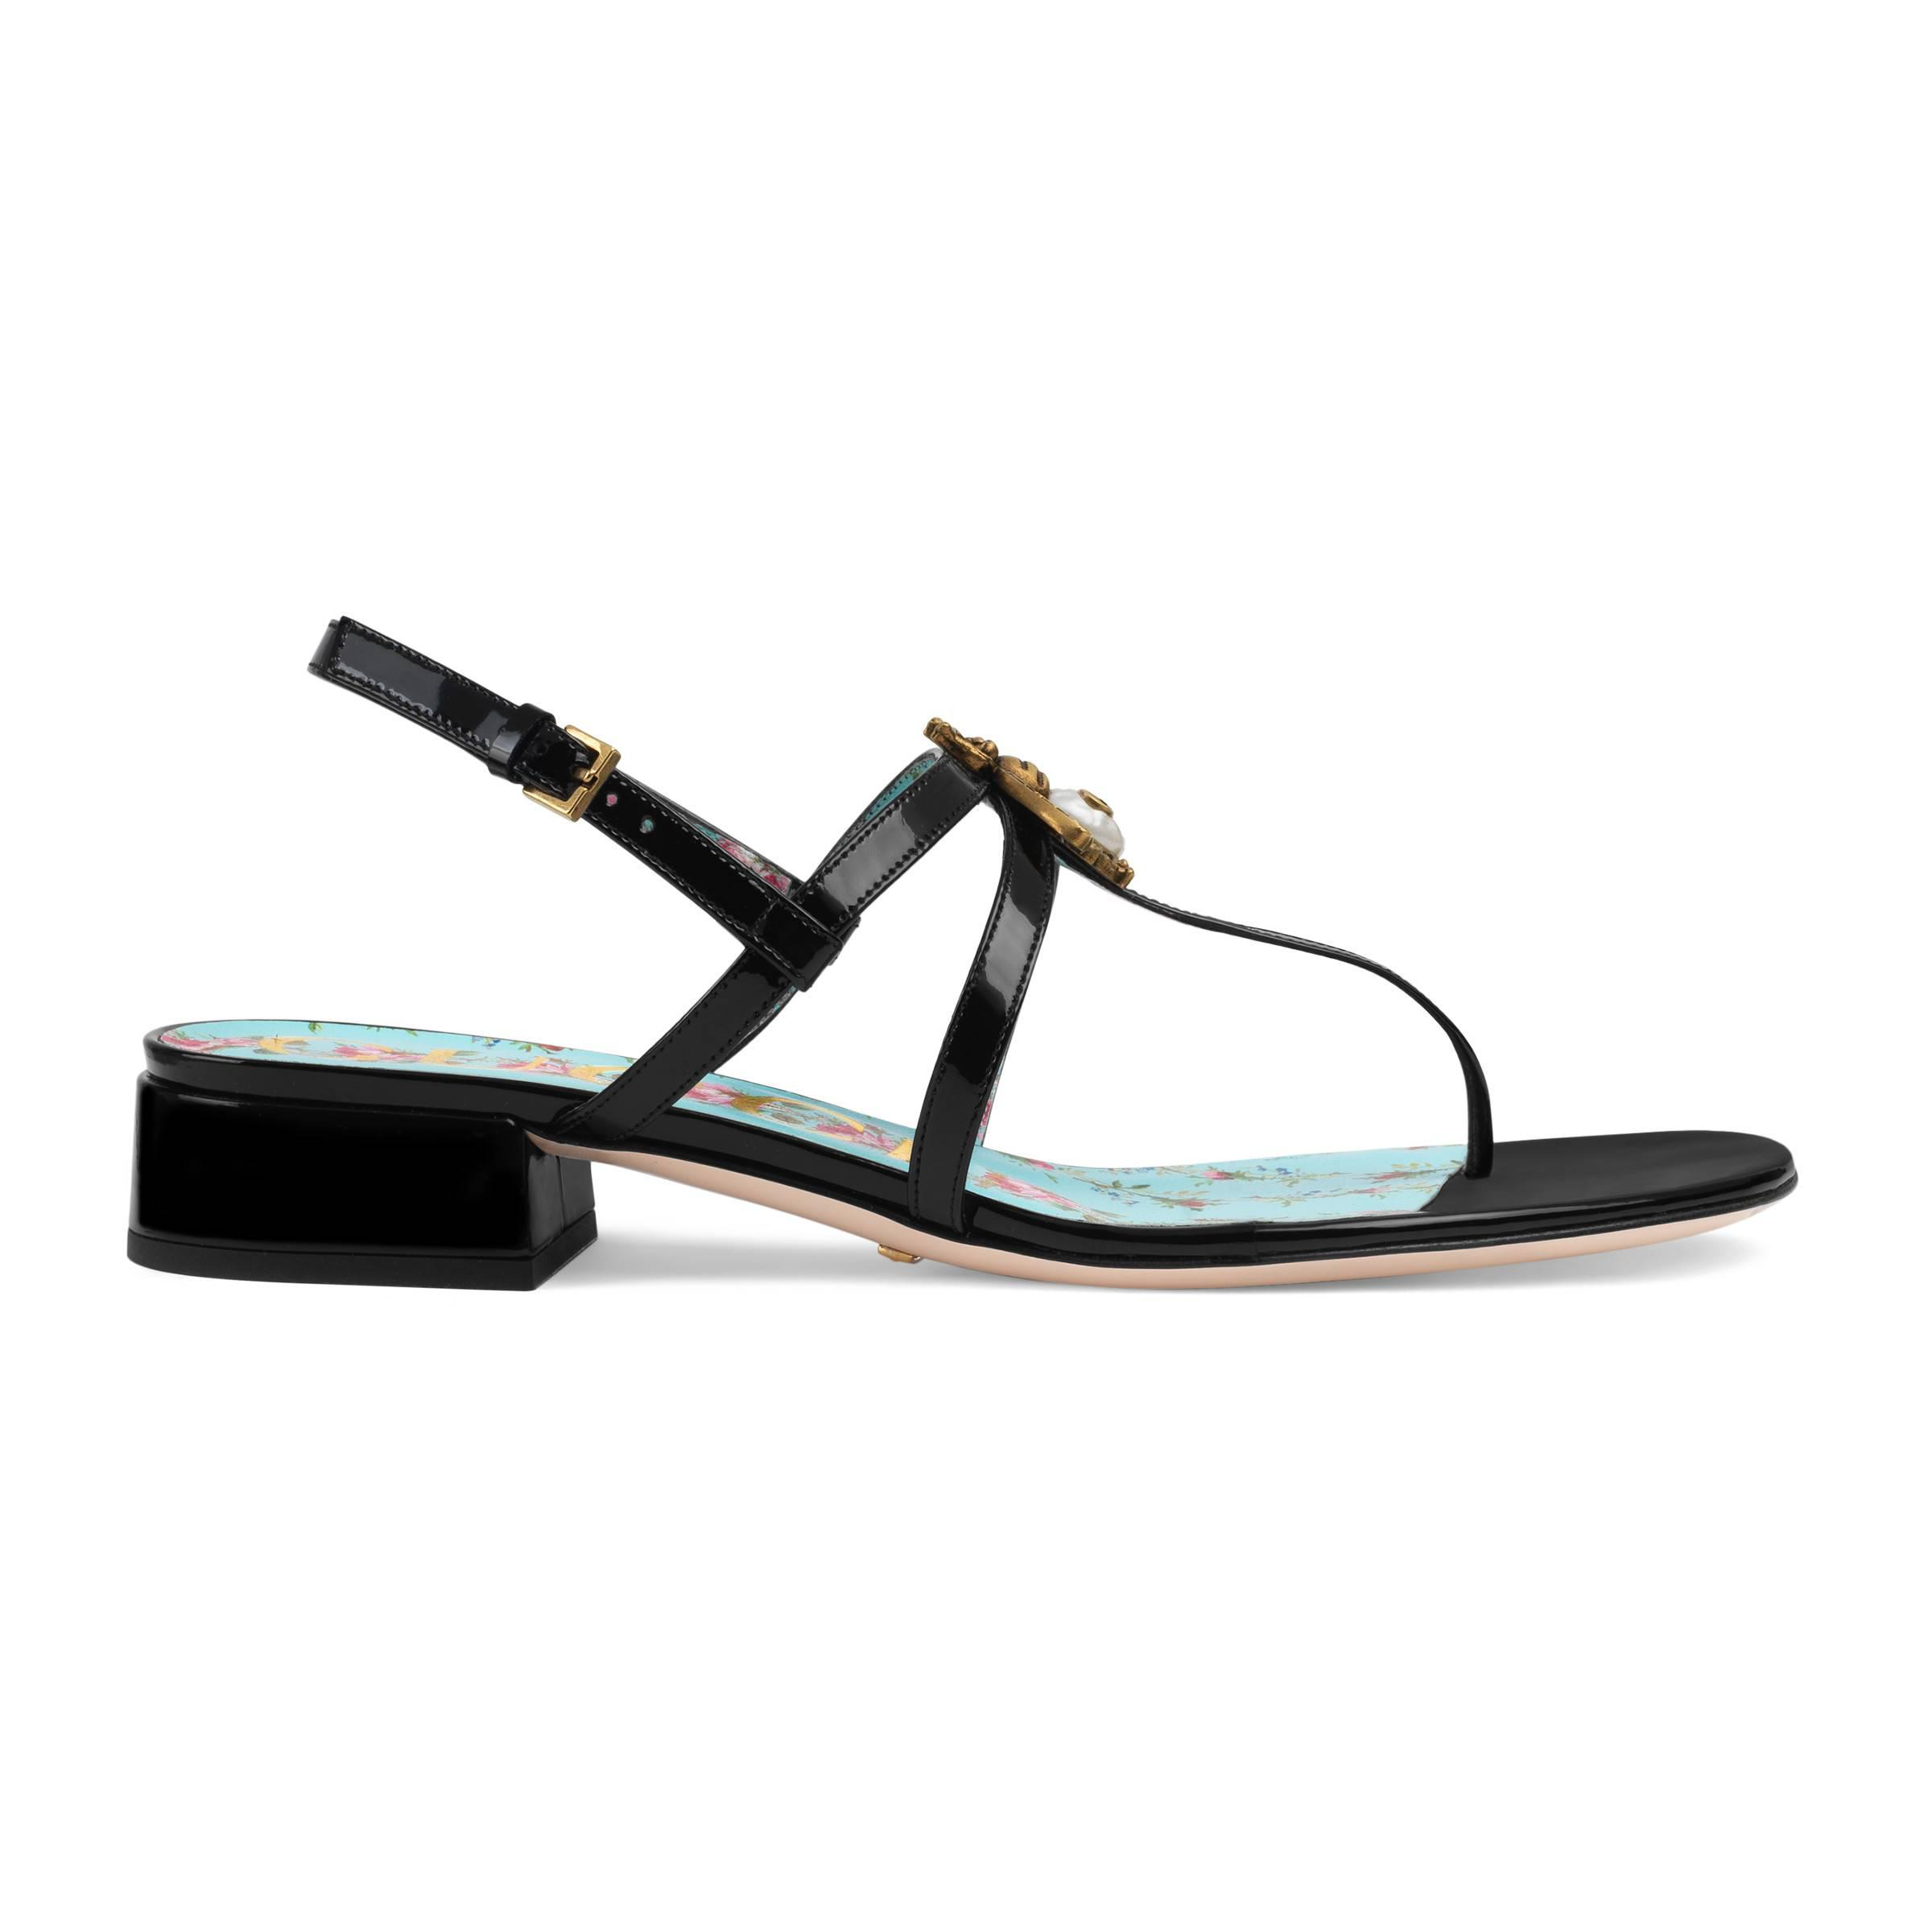 e937334ee7c9f Gucci - Black Patent Leather Sandal With Bee - Lyst. View fullscreen